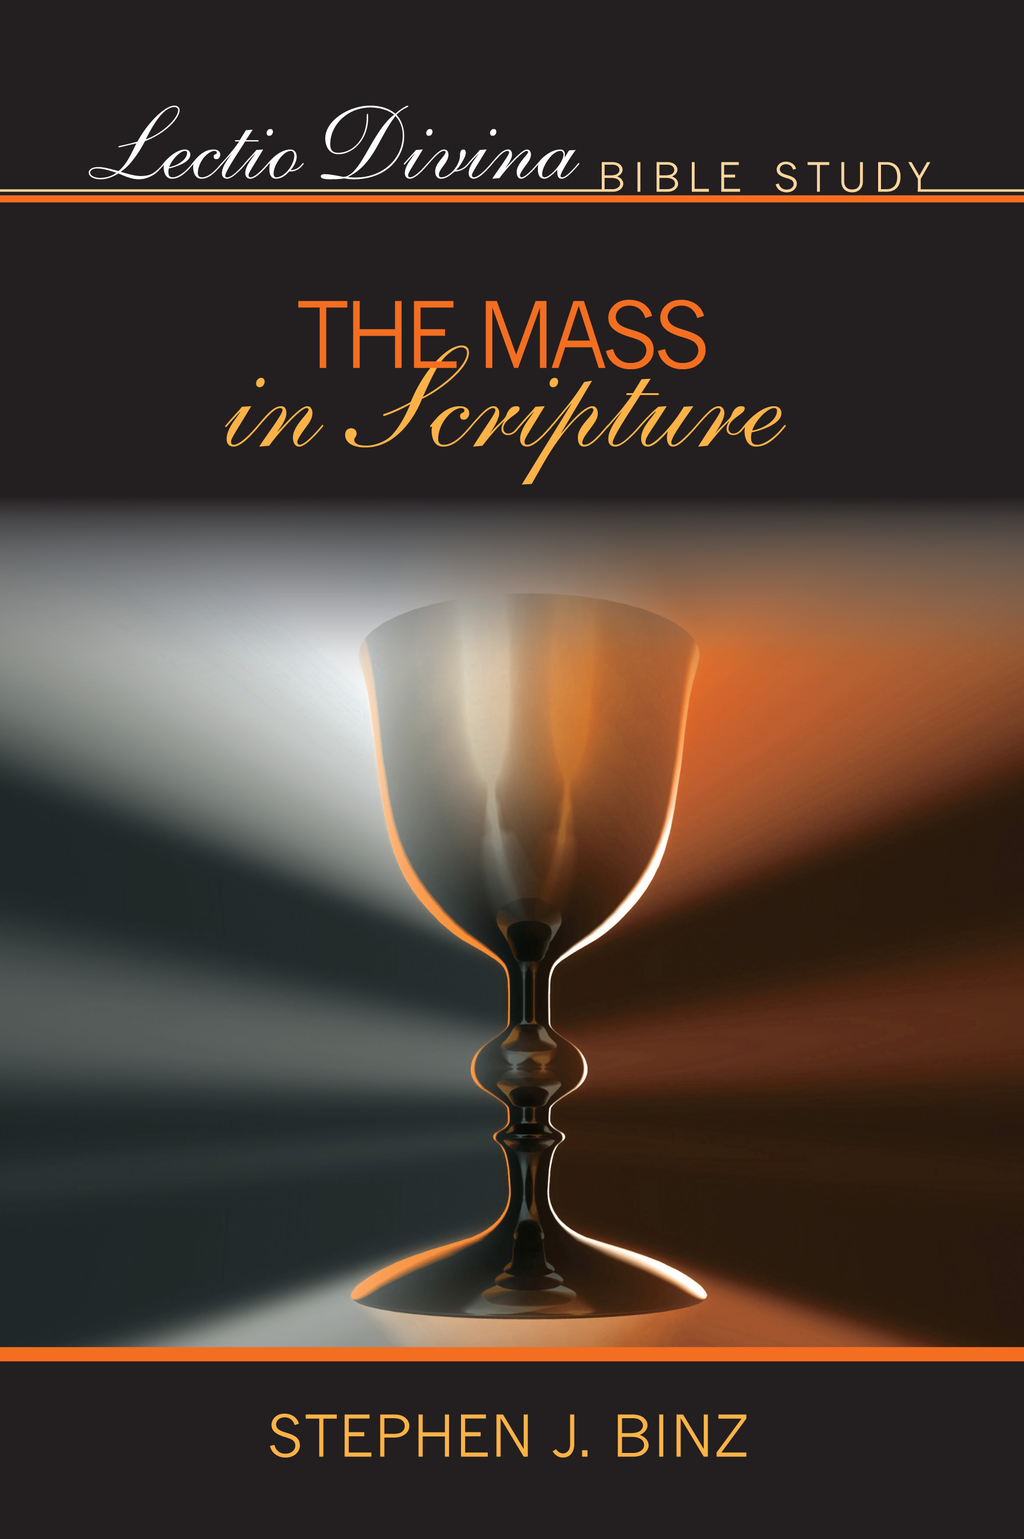 Lectio Divina Bible Study: The Mass in Scripture By: Stephen Binz